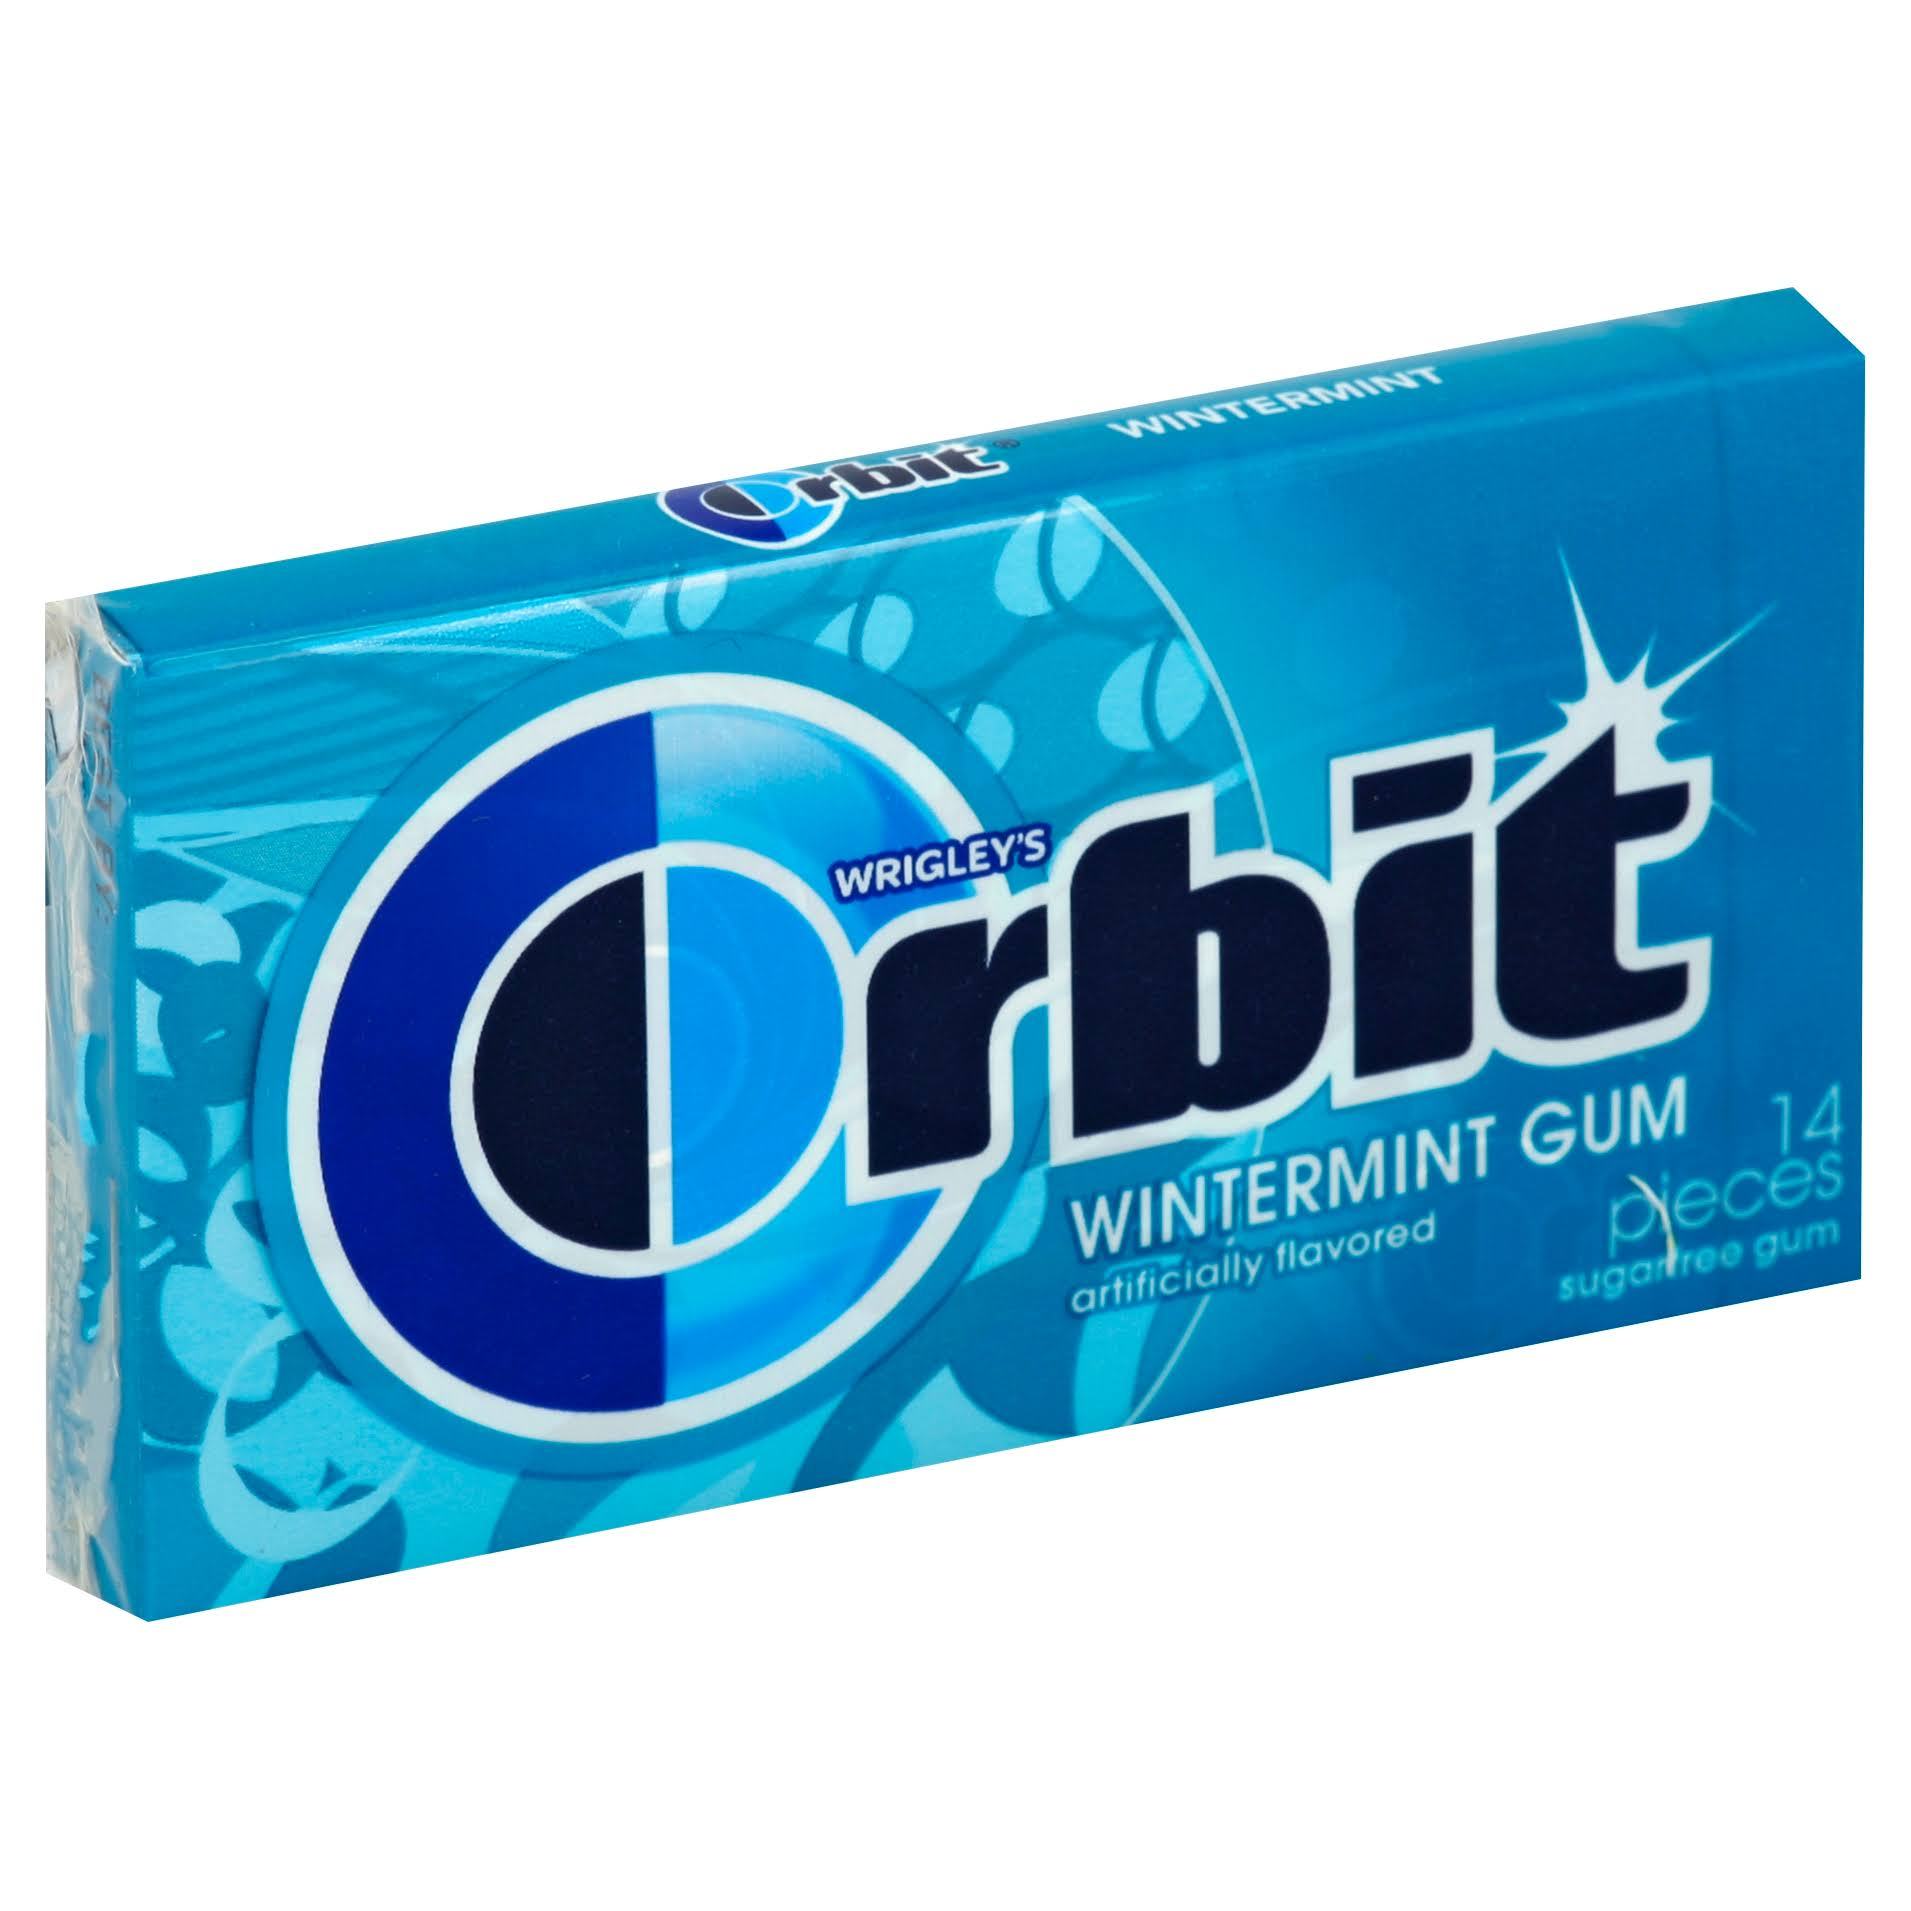 Orbit Gum - Wintermint, 14 Pieces